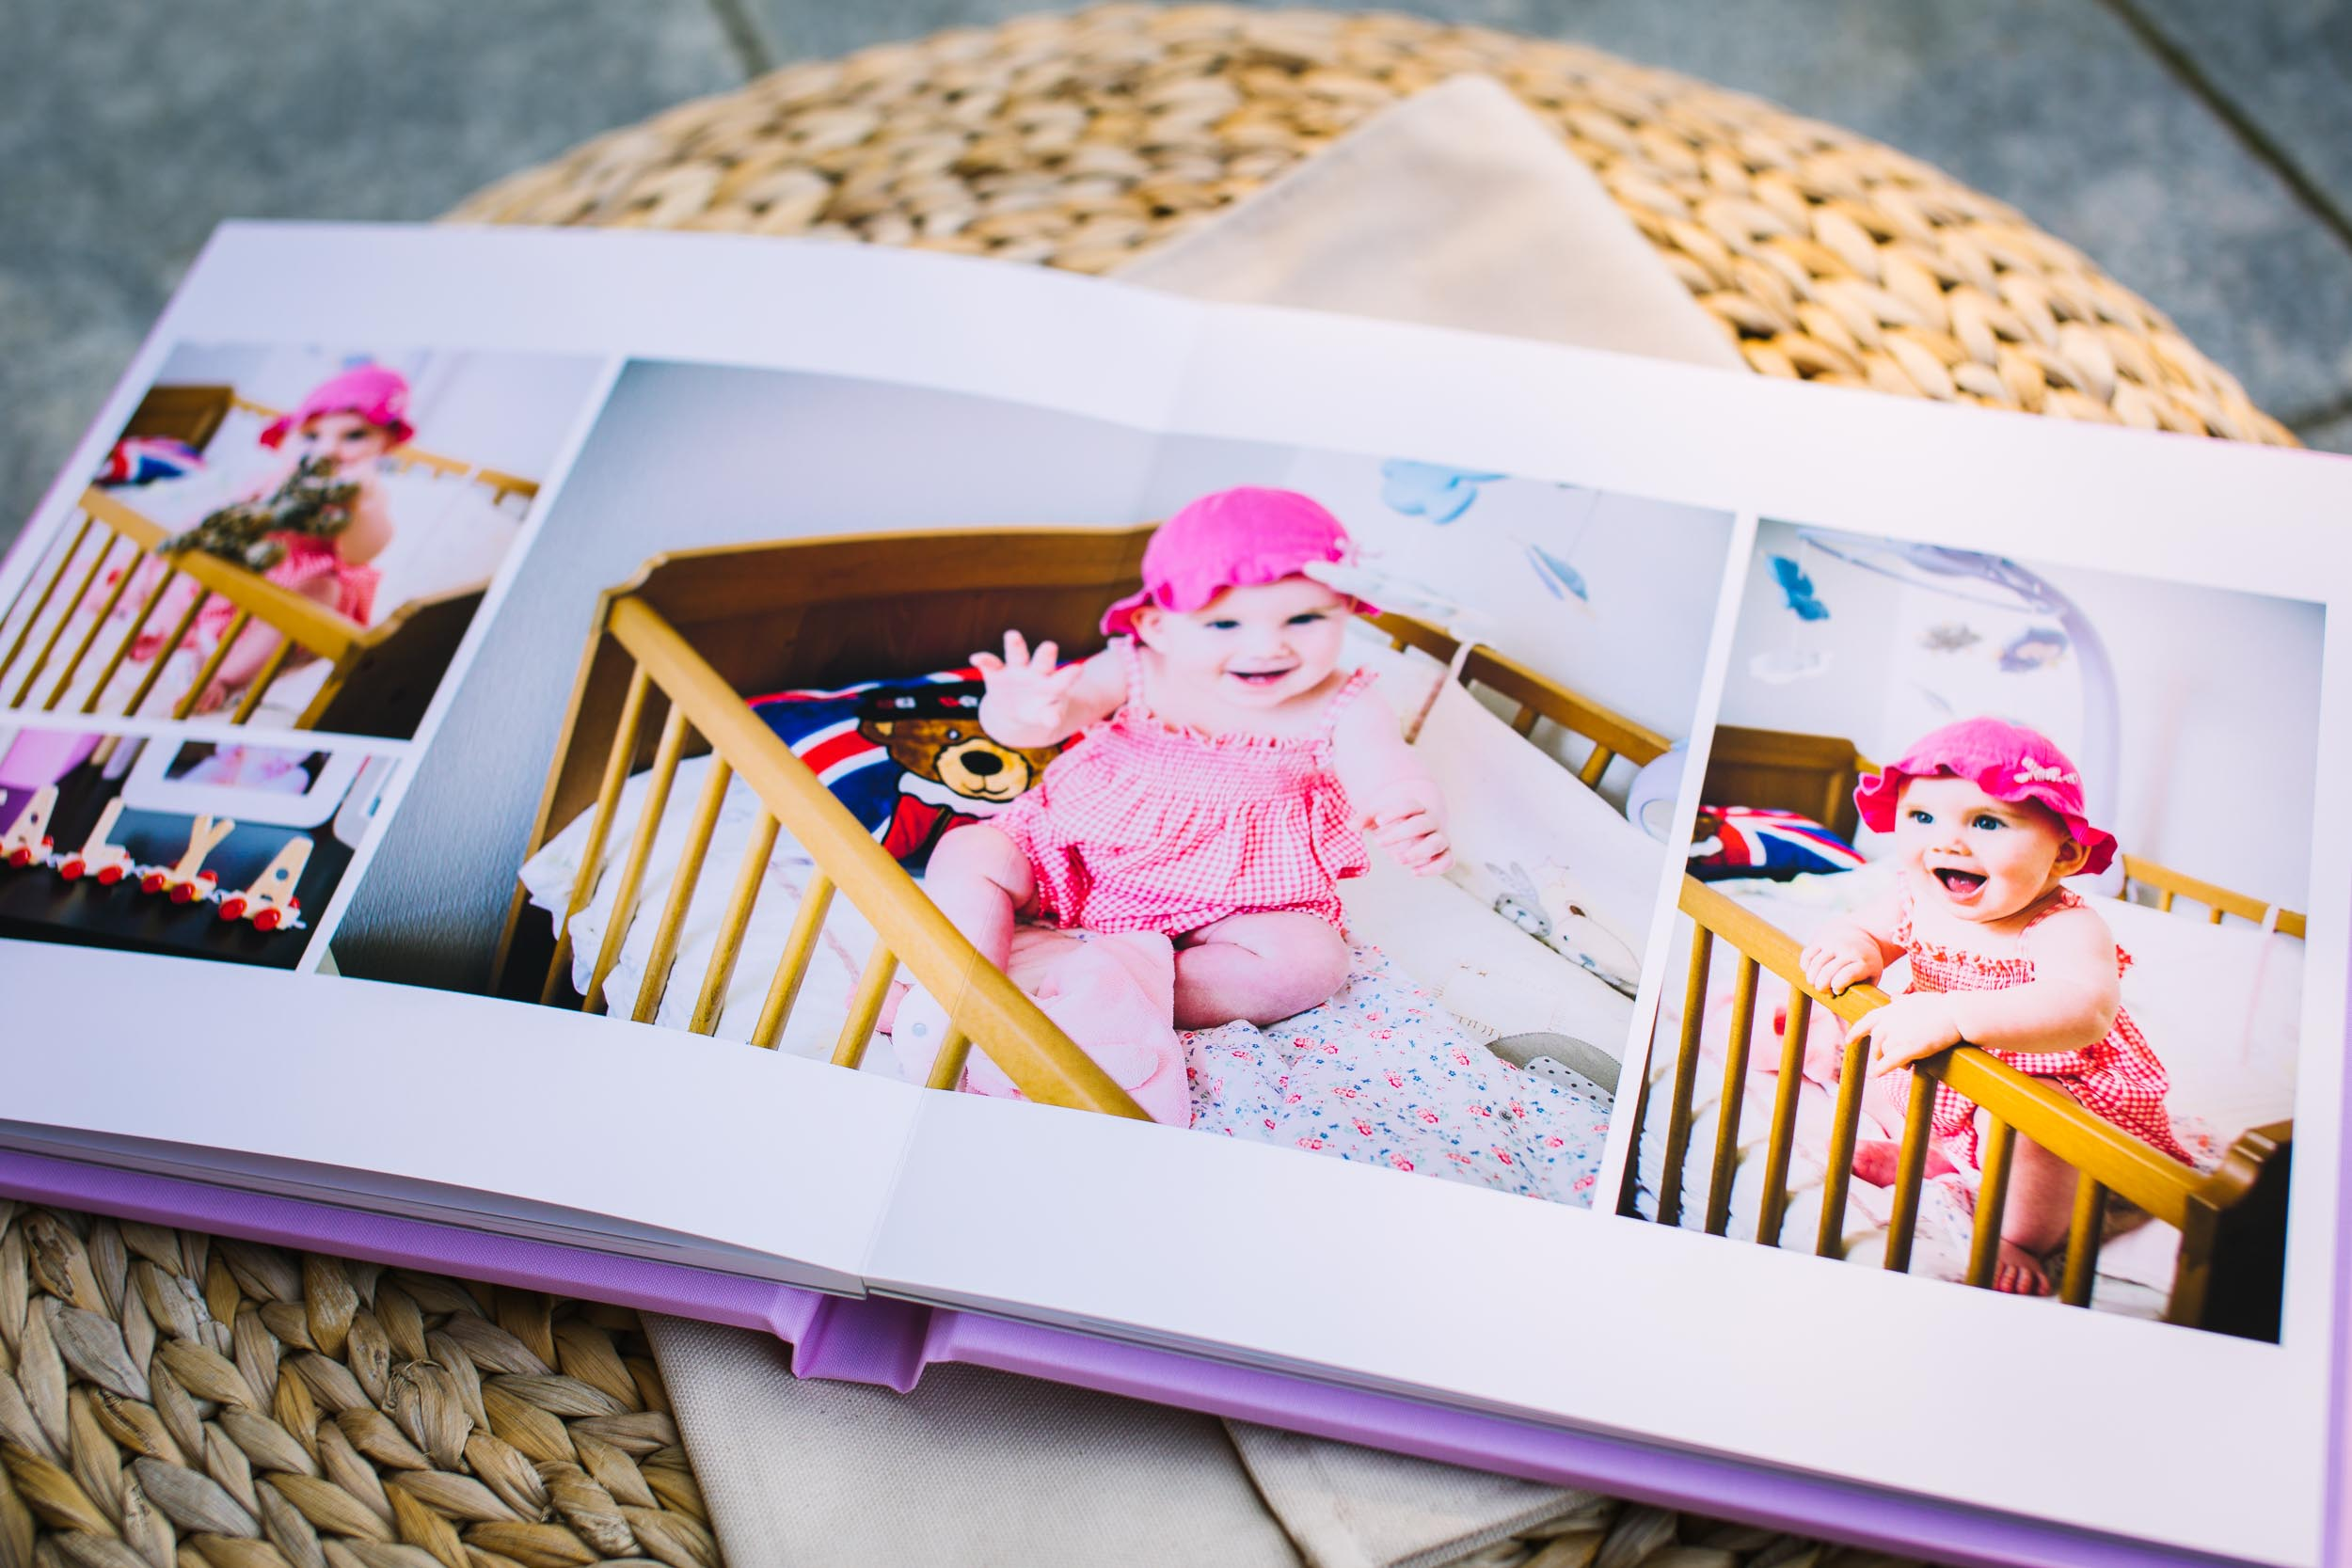 Portrait albums - Browse the galleries of different album styles and discover how to order your portrait album.